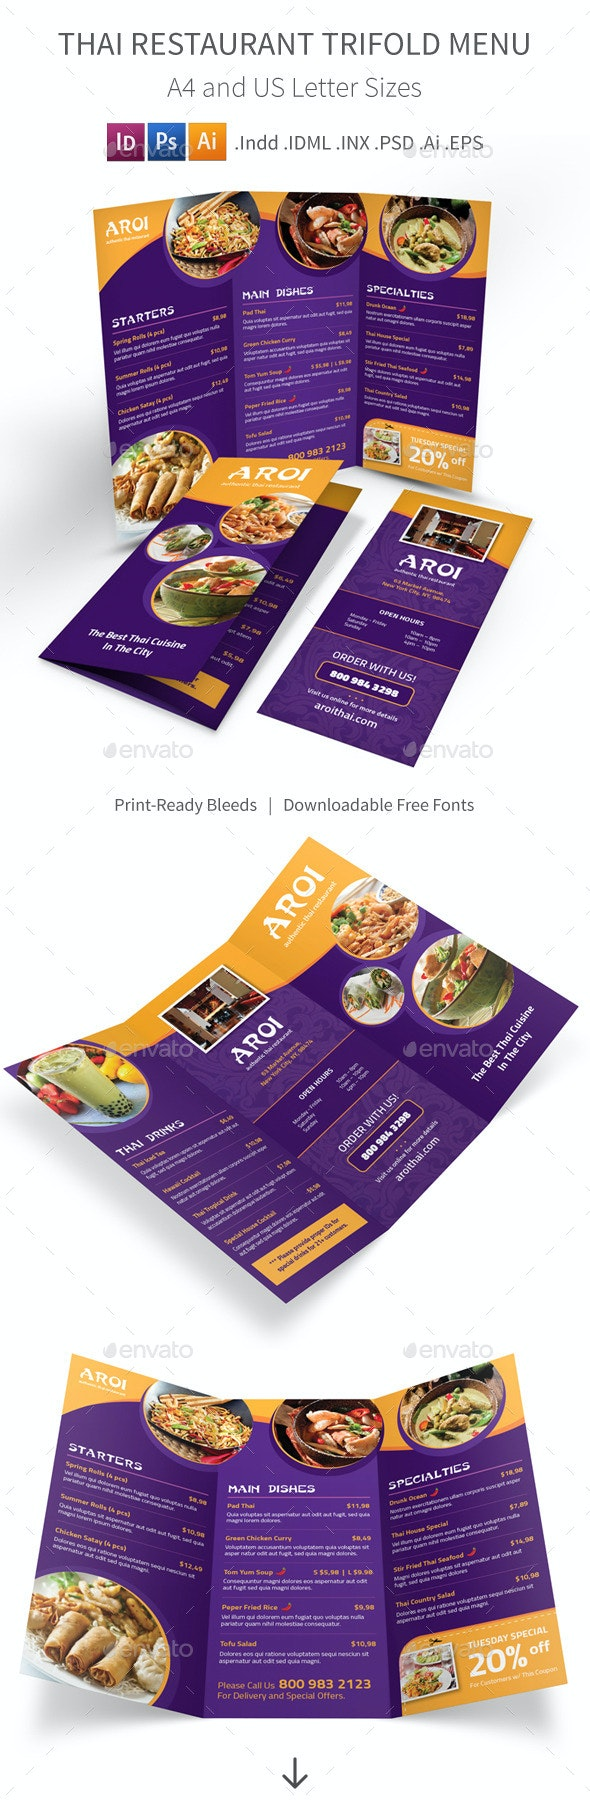 Thai Restaurant Trifold Menu - Food Menus Print Templates